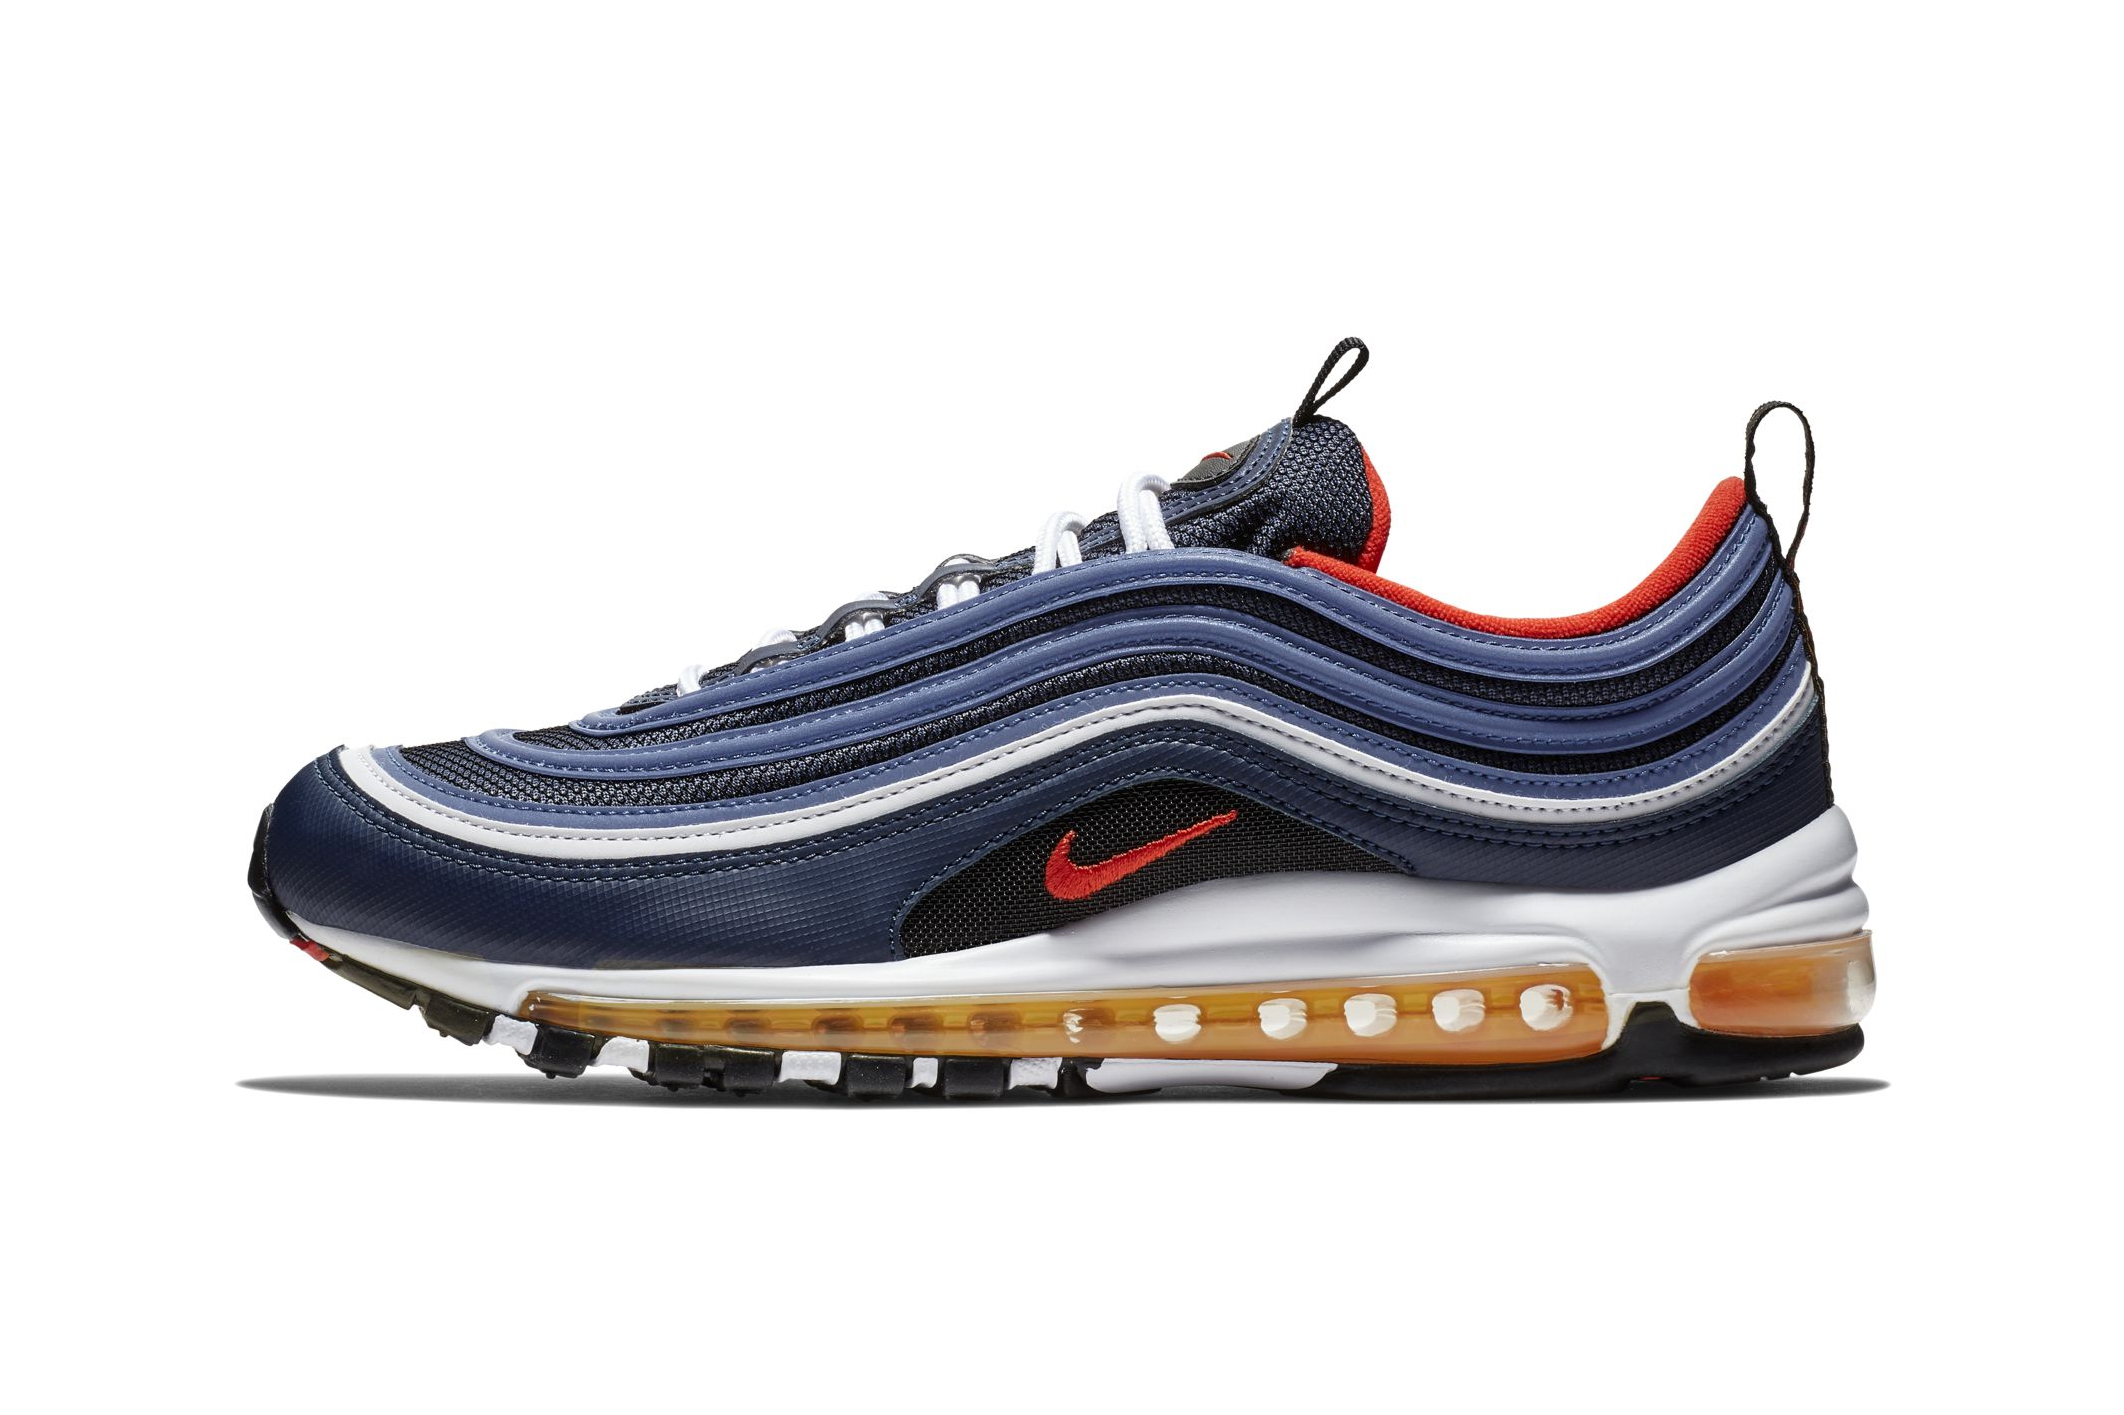 4abf02a4e79 Nike Air Max 97 Midnight Navy Habanero Red Release info sneaker colorway  date price navy red